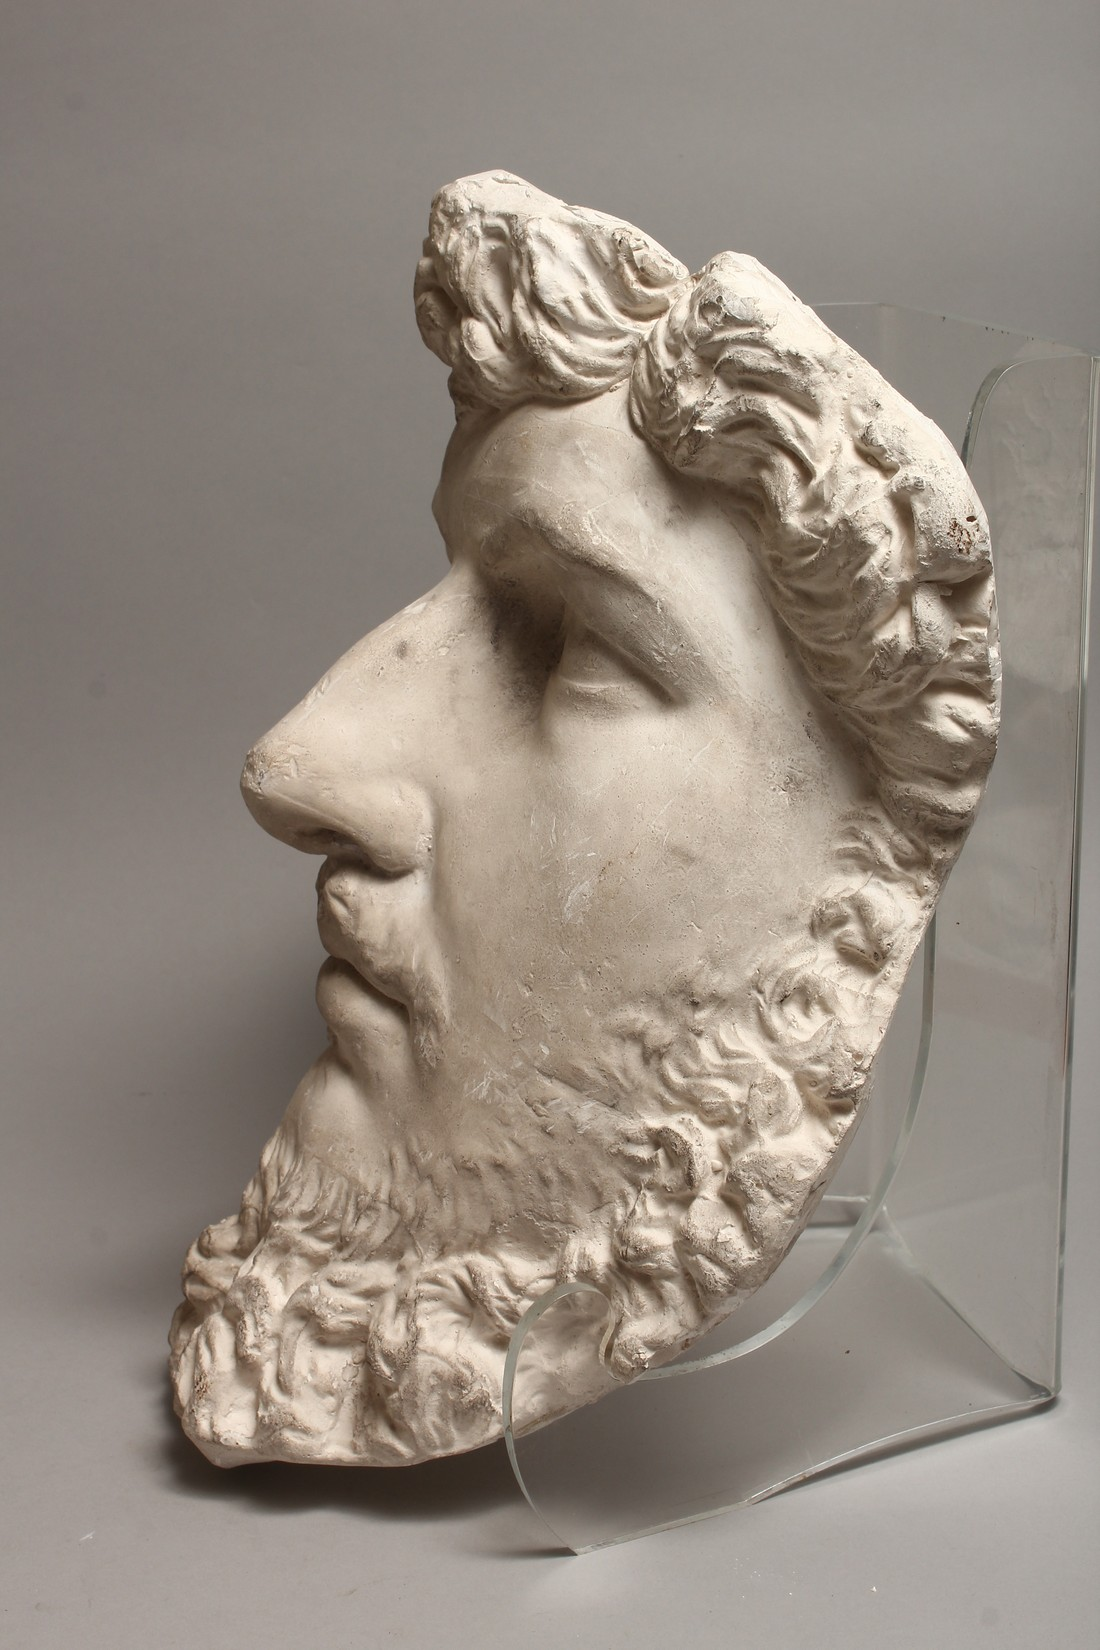 A RUSSIAN LARGE PLASTER HEAD OF A MAN 14ins long - Image 3 of 4